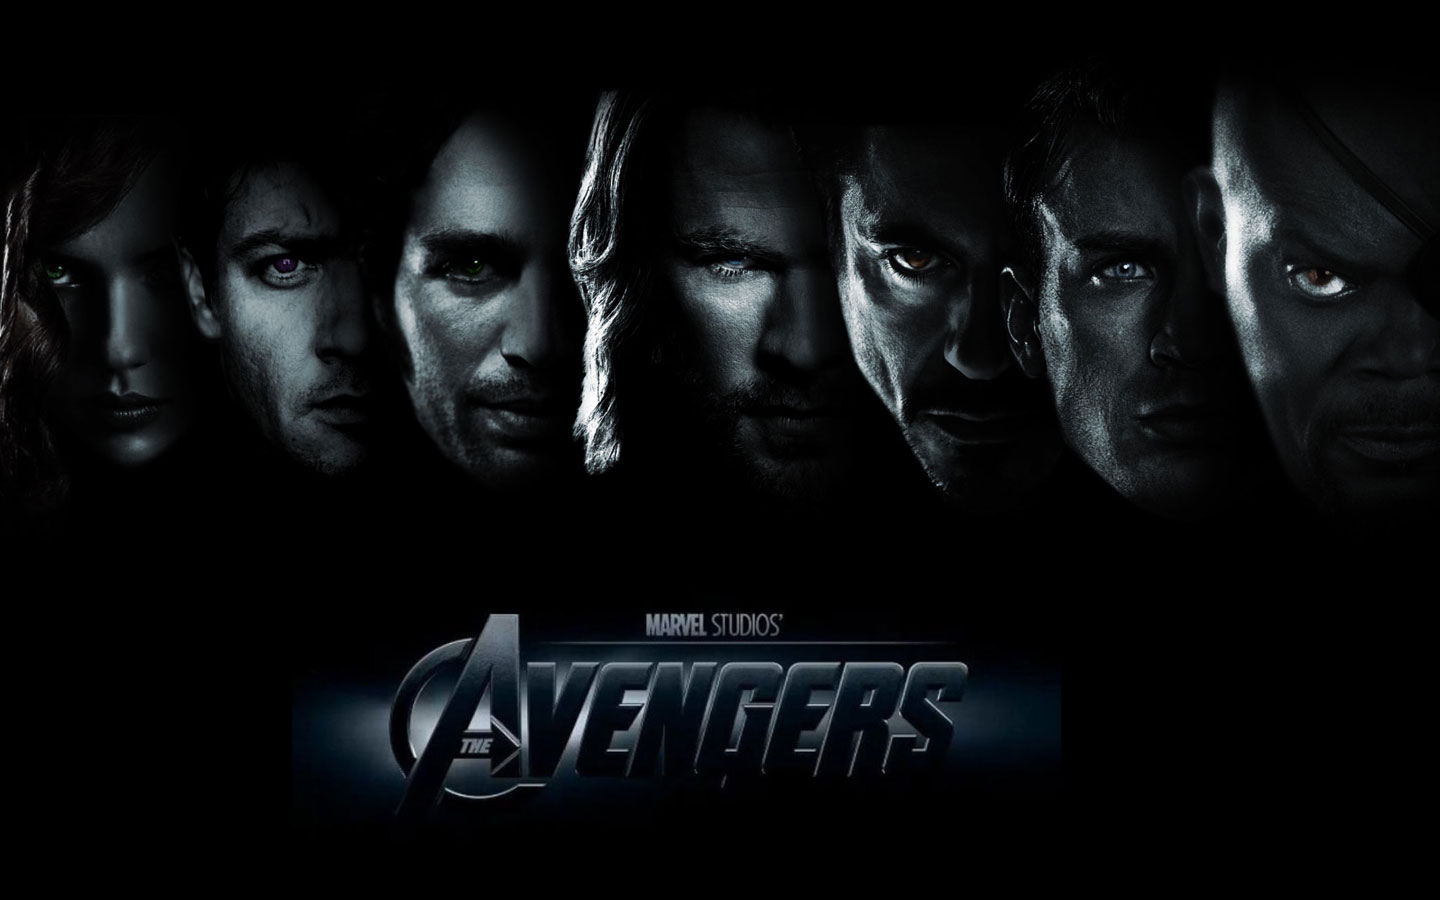 Cool Team of the Avengers Wallpaper HD